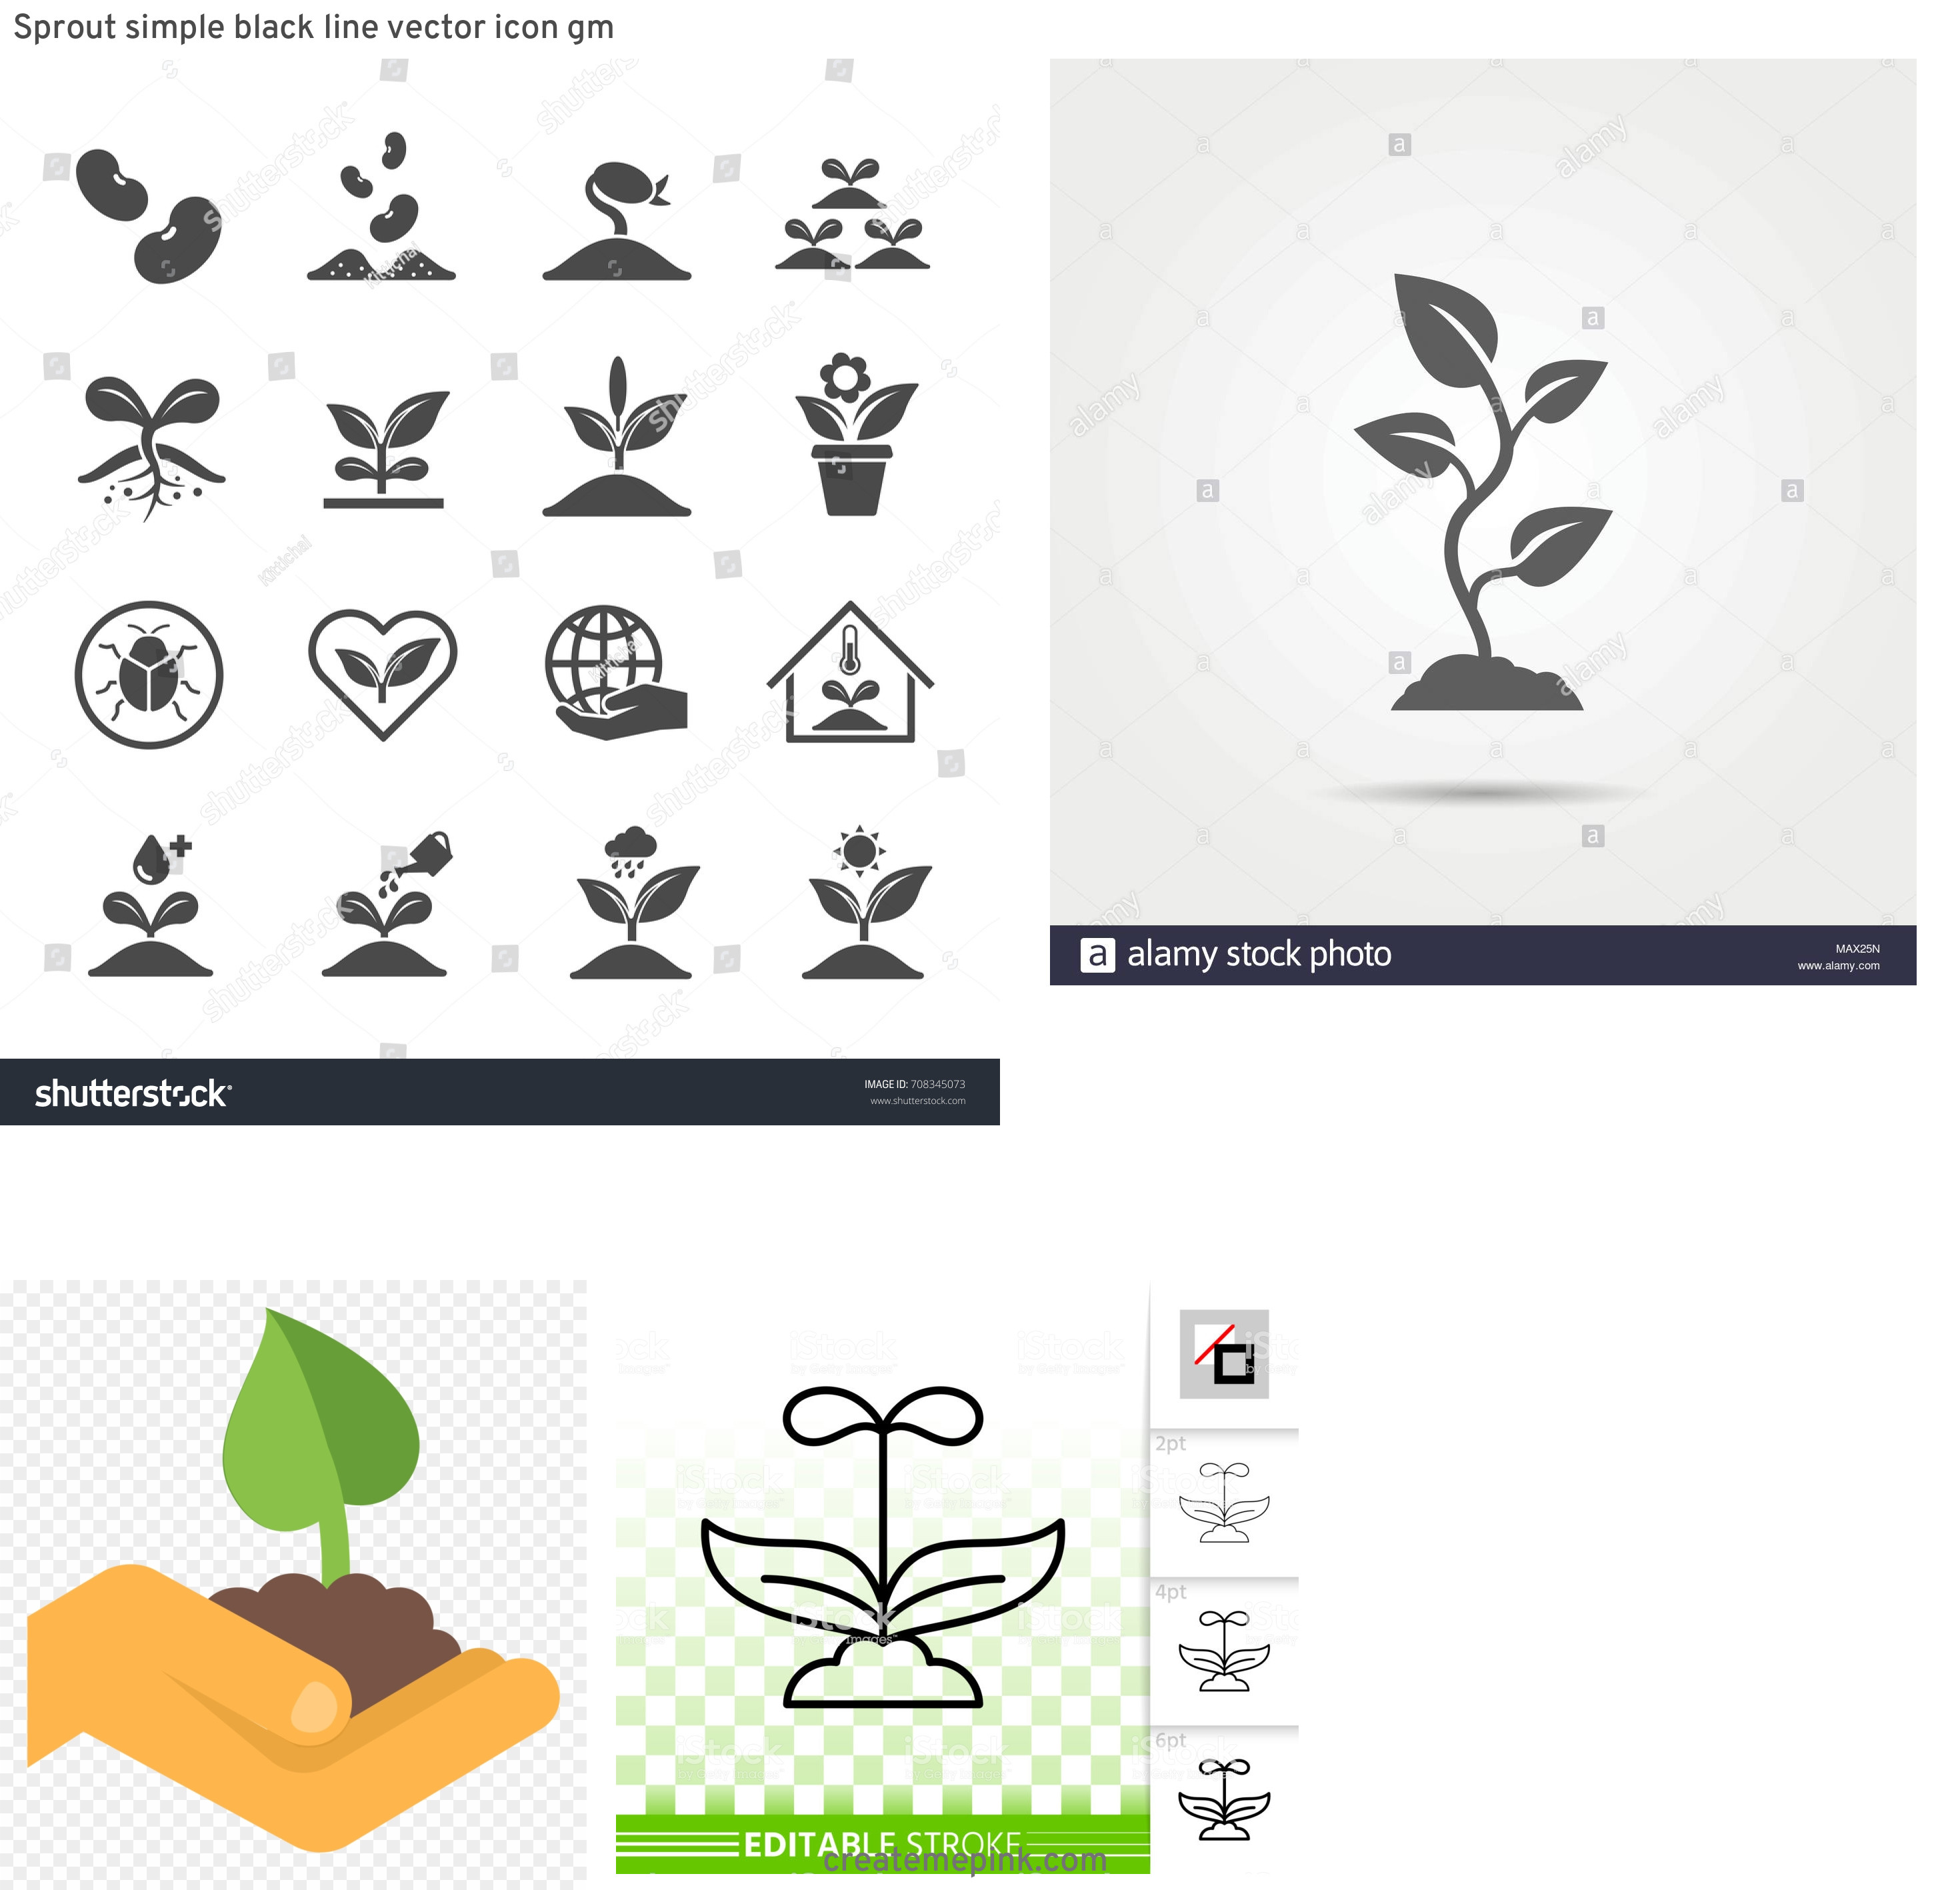 Sprout Icon Vector: Sprout Simple Black Line Vector Icon Gm